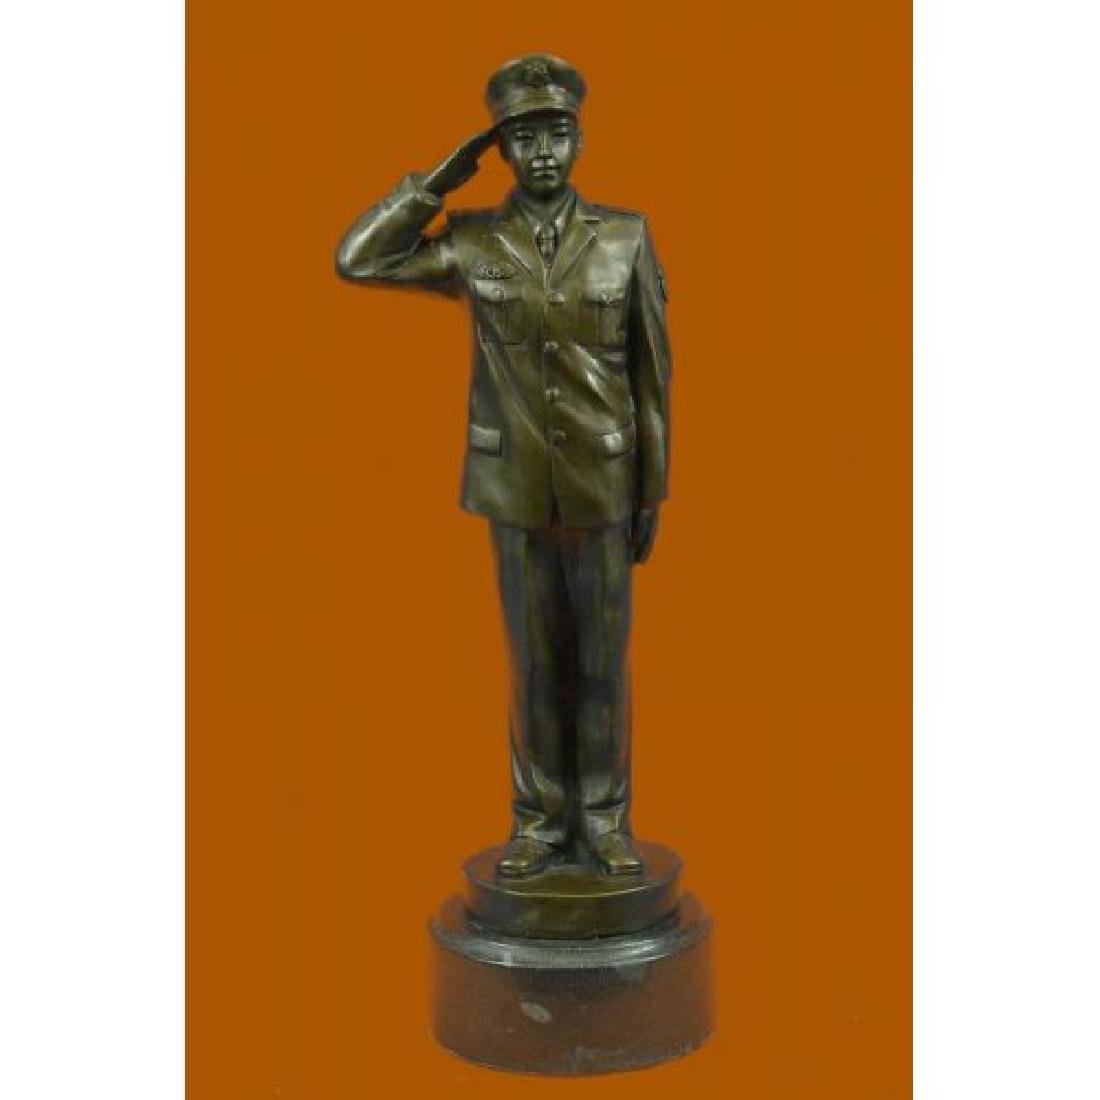 Hand Crafted Police Officer in Uniform Bronze Sculpture